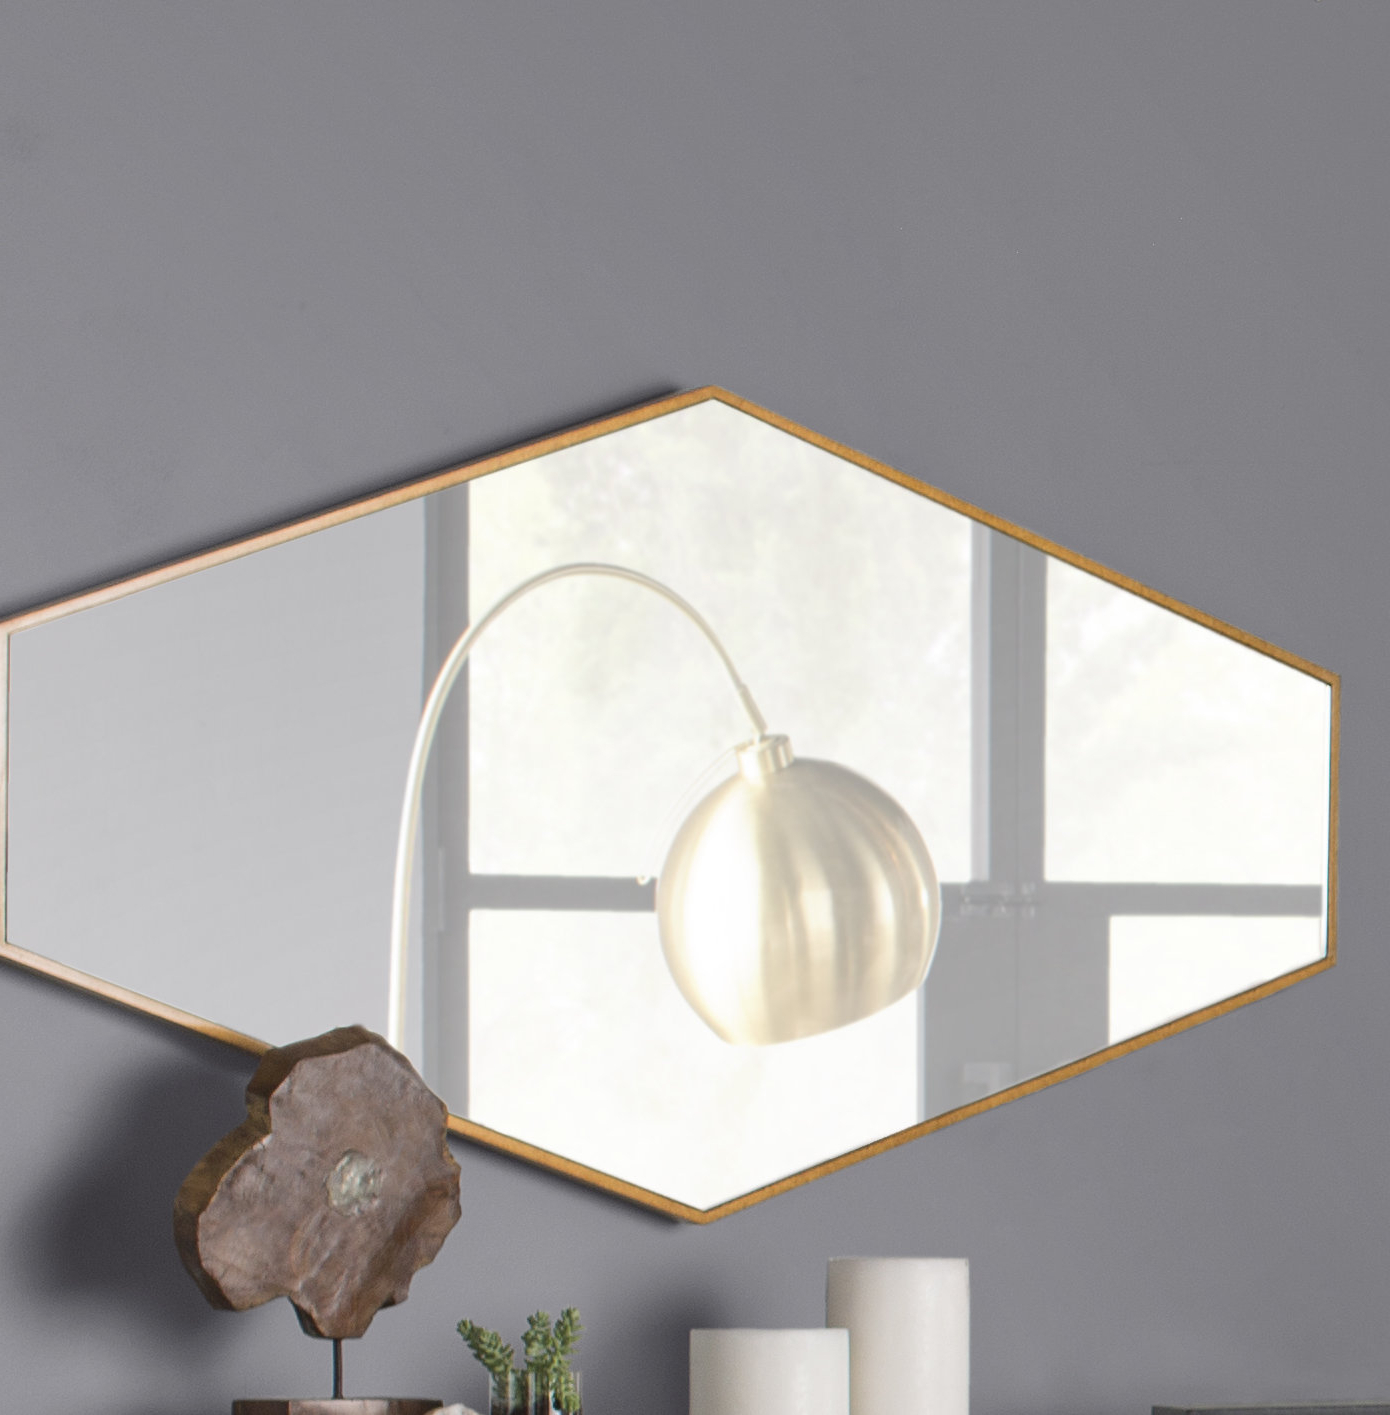 Accent Mirror With Regard To 2019 Padang Irregular Wood Framed Wall Mirrors (View 3 of 20)